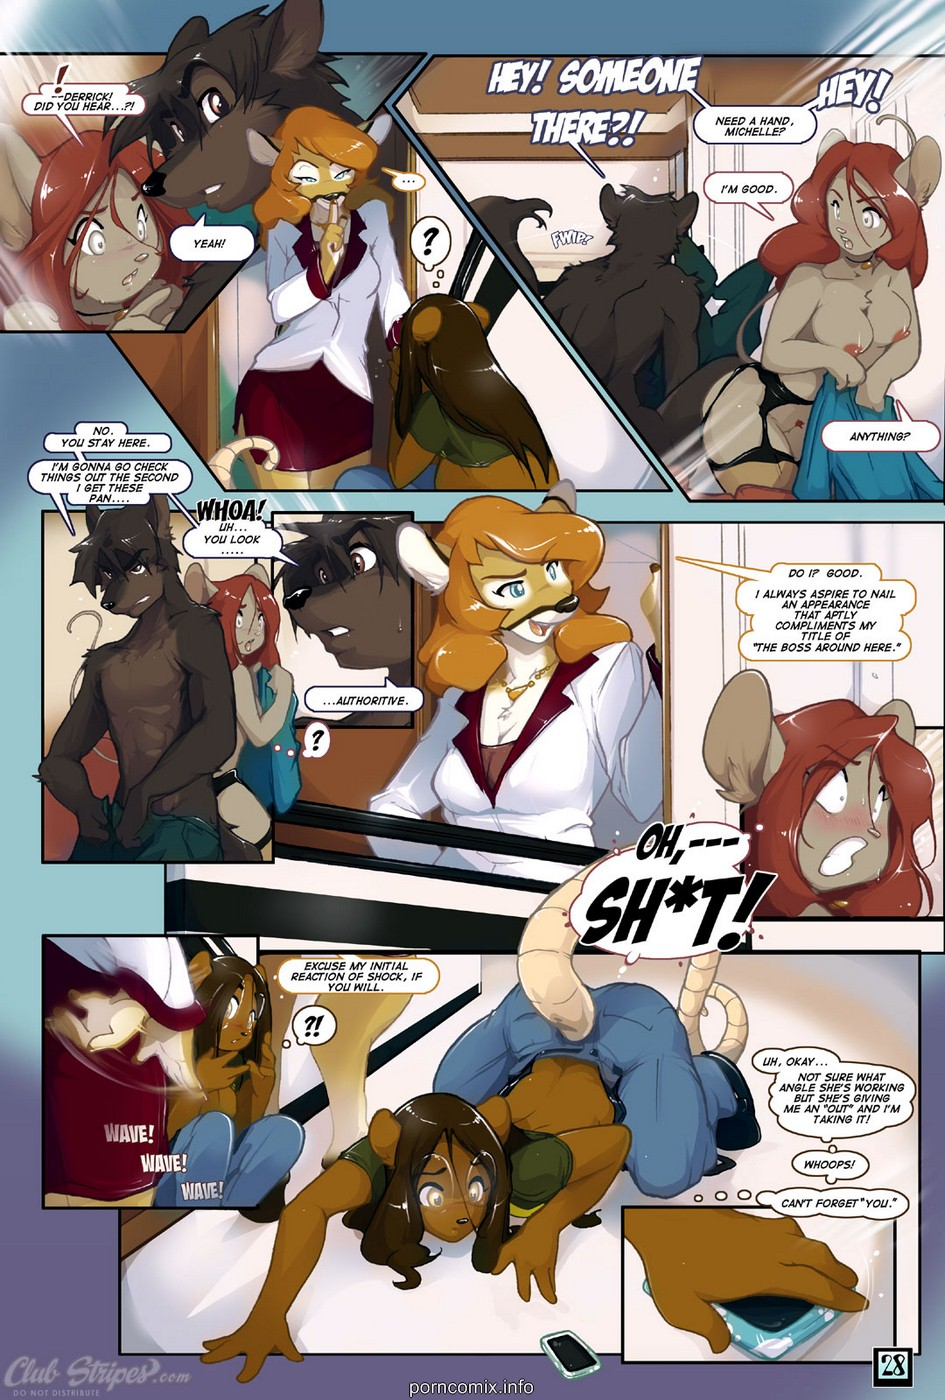 Club Stripes Furry-Good Call - part 2